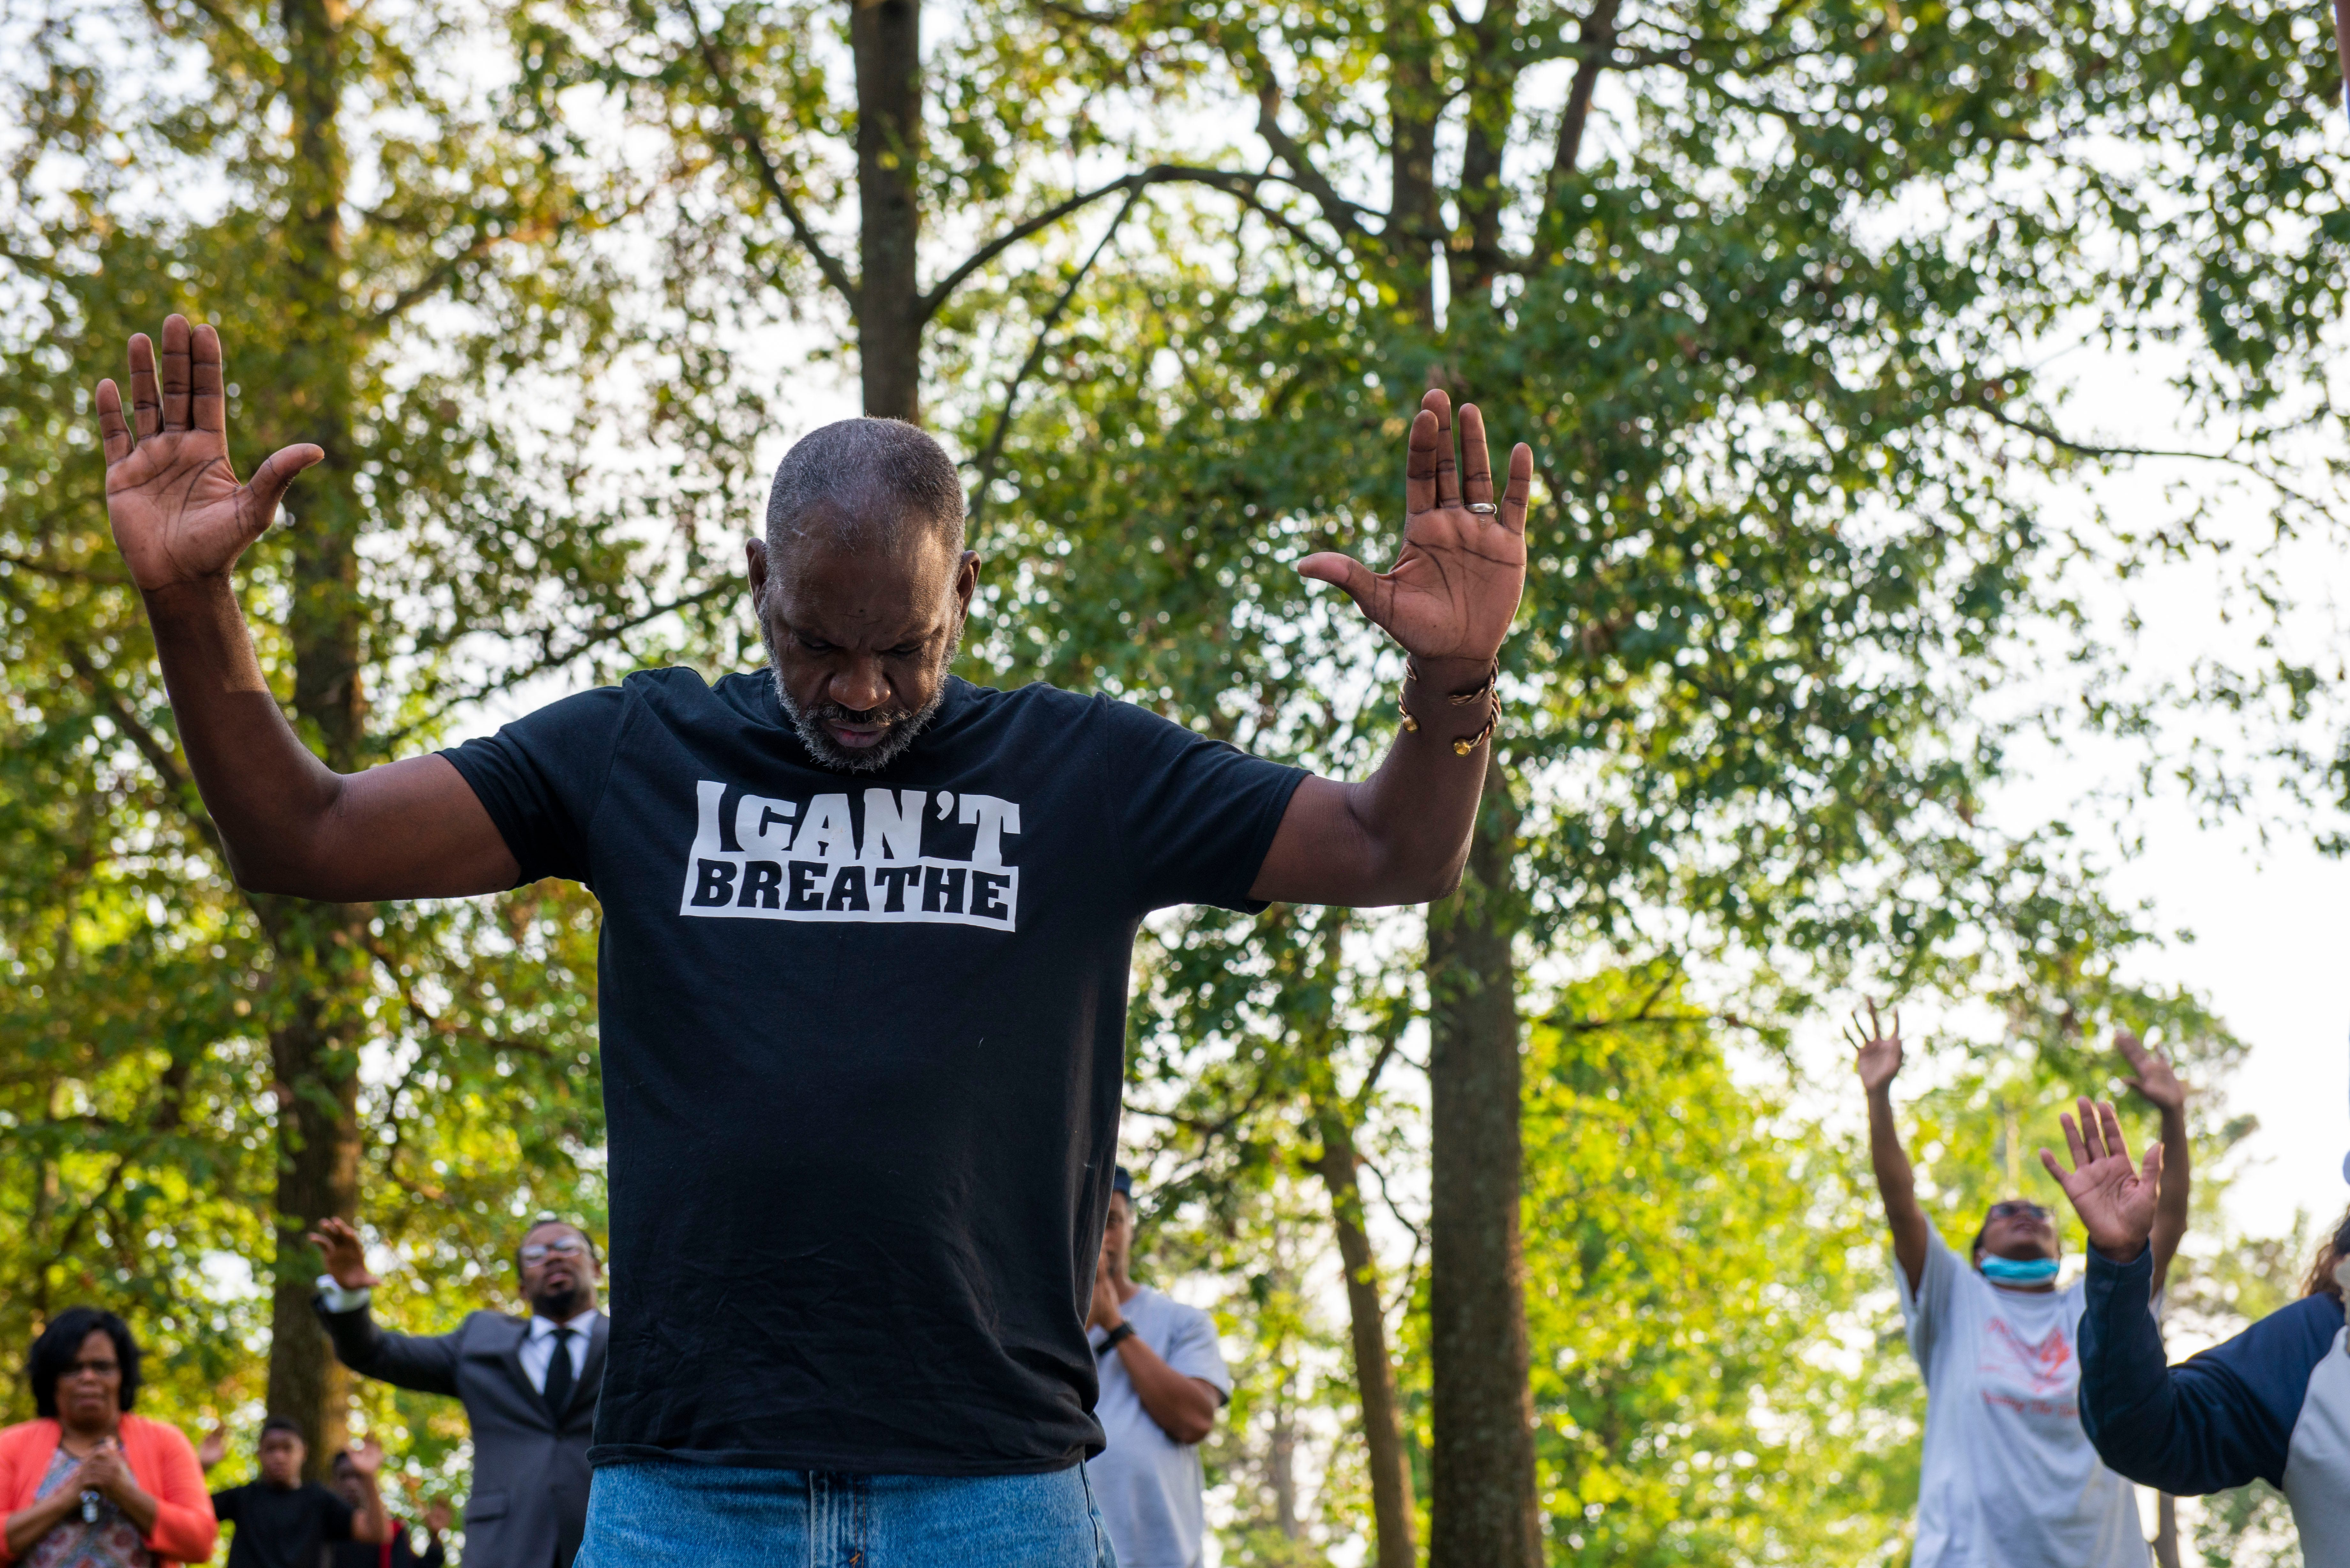 Michael Porter prays with the Gibson County community at Viking Park to peacefully protest police violence against the Black community in Humboldt, Tenn., on June 4.